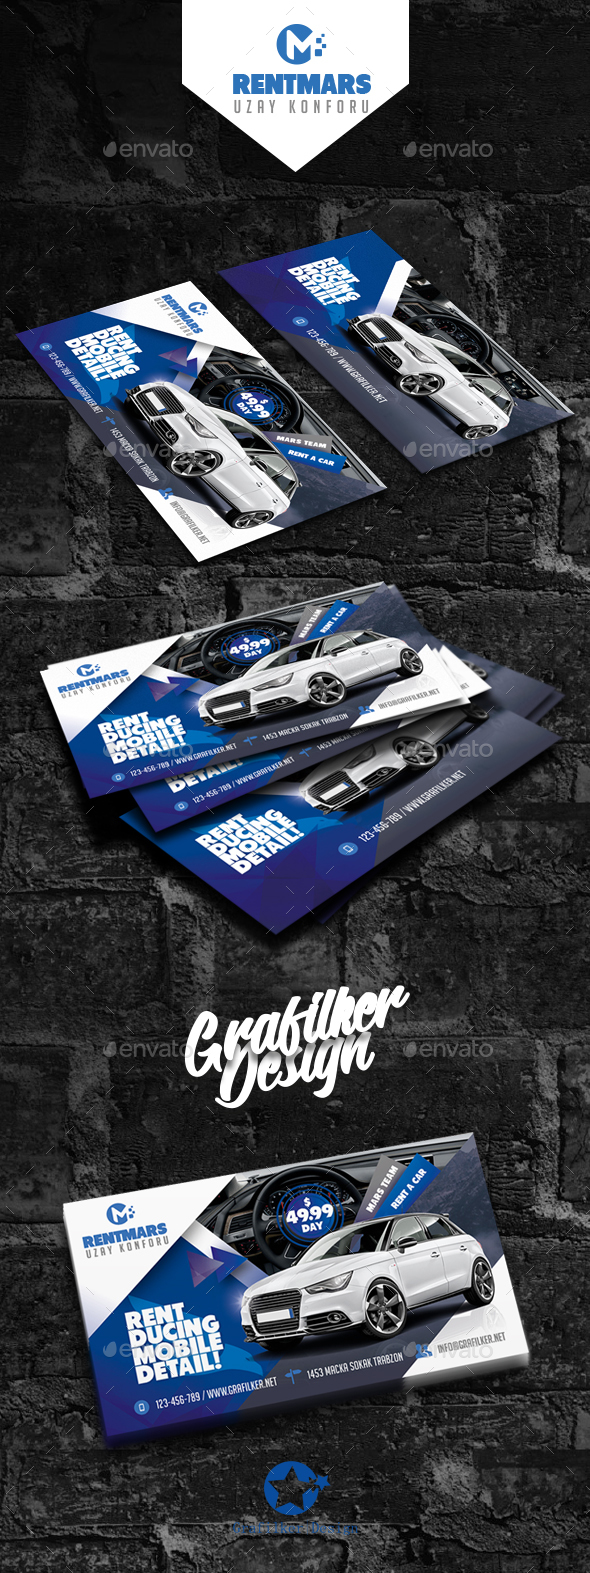 Rent A Car Business Card Templates - Corporate Business Cards